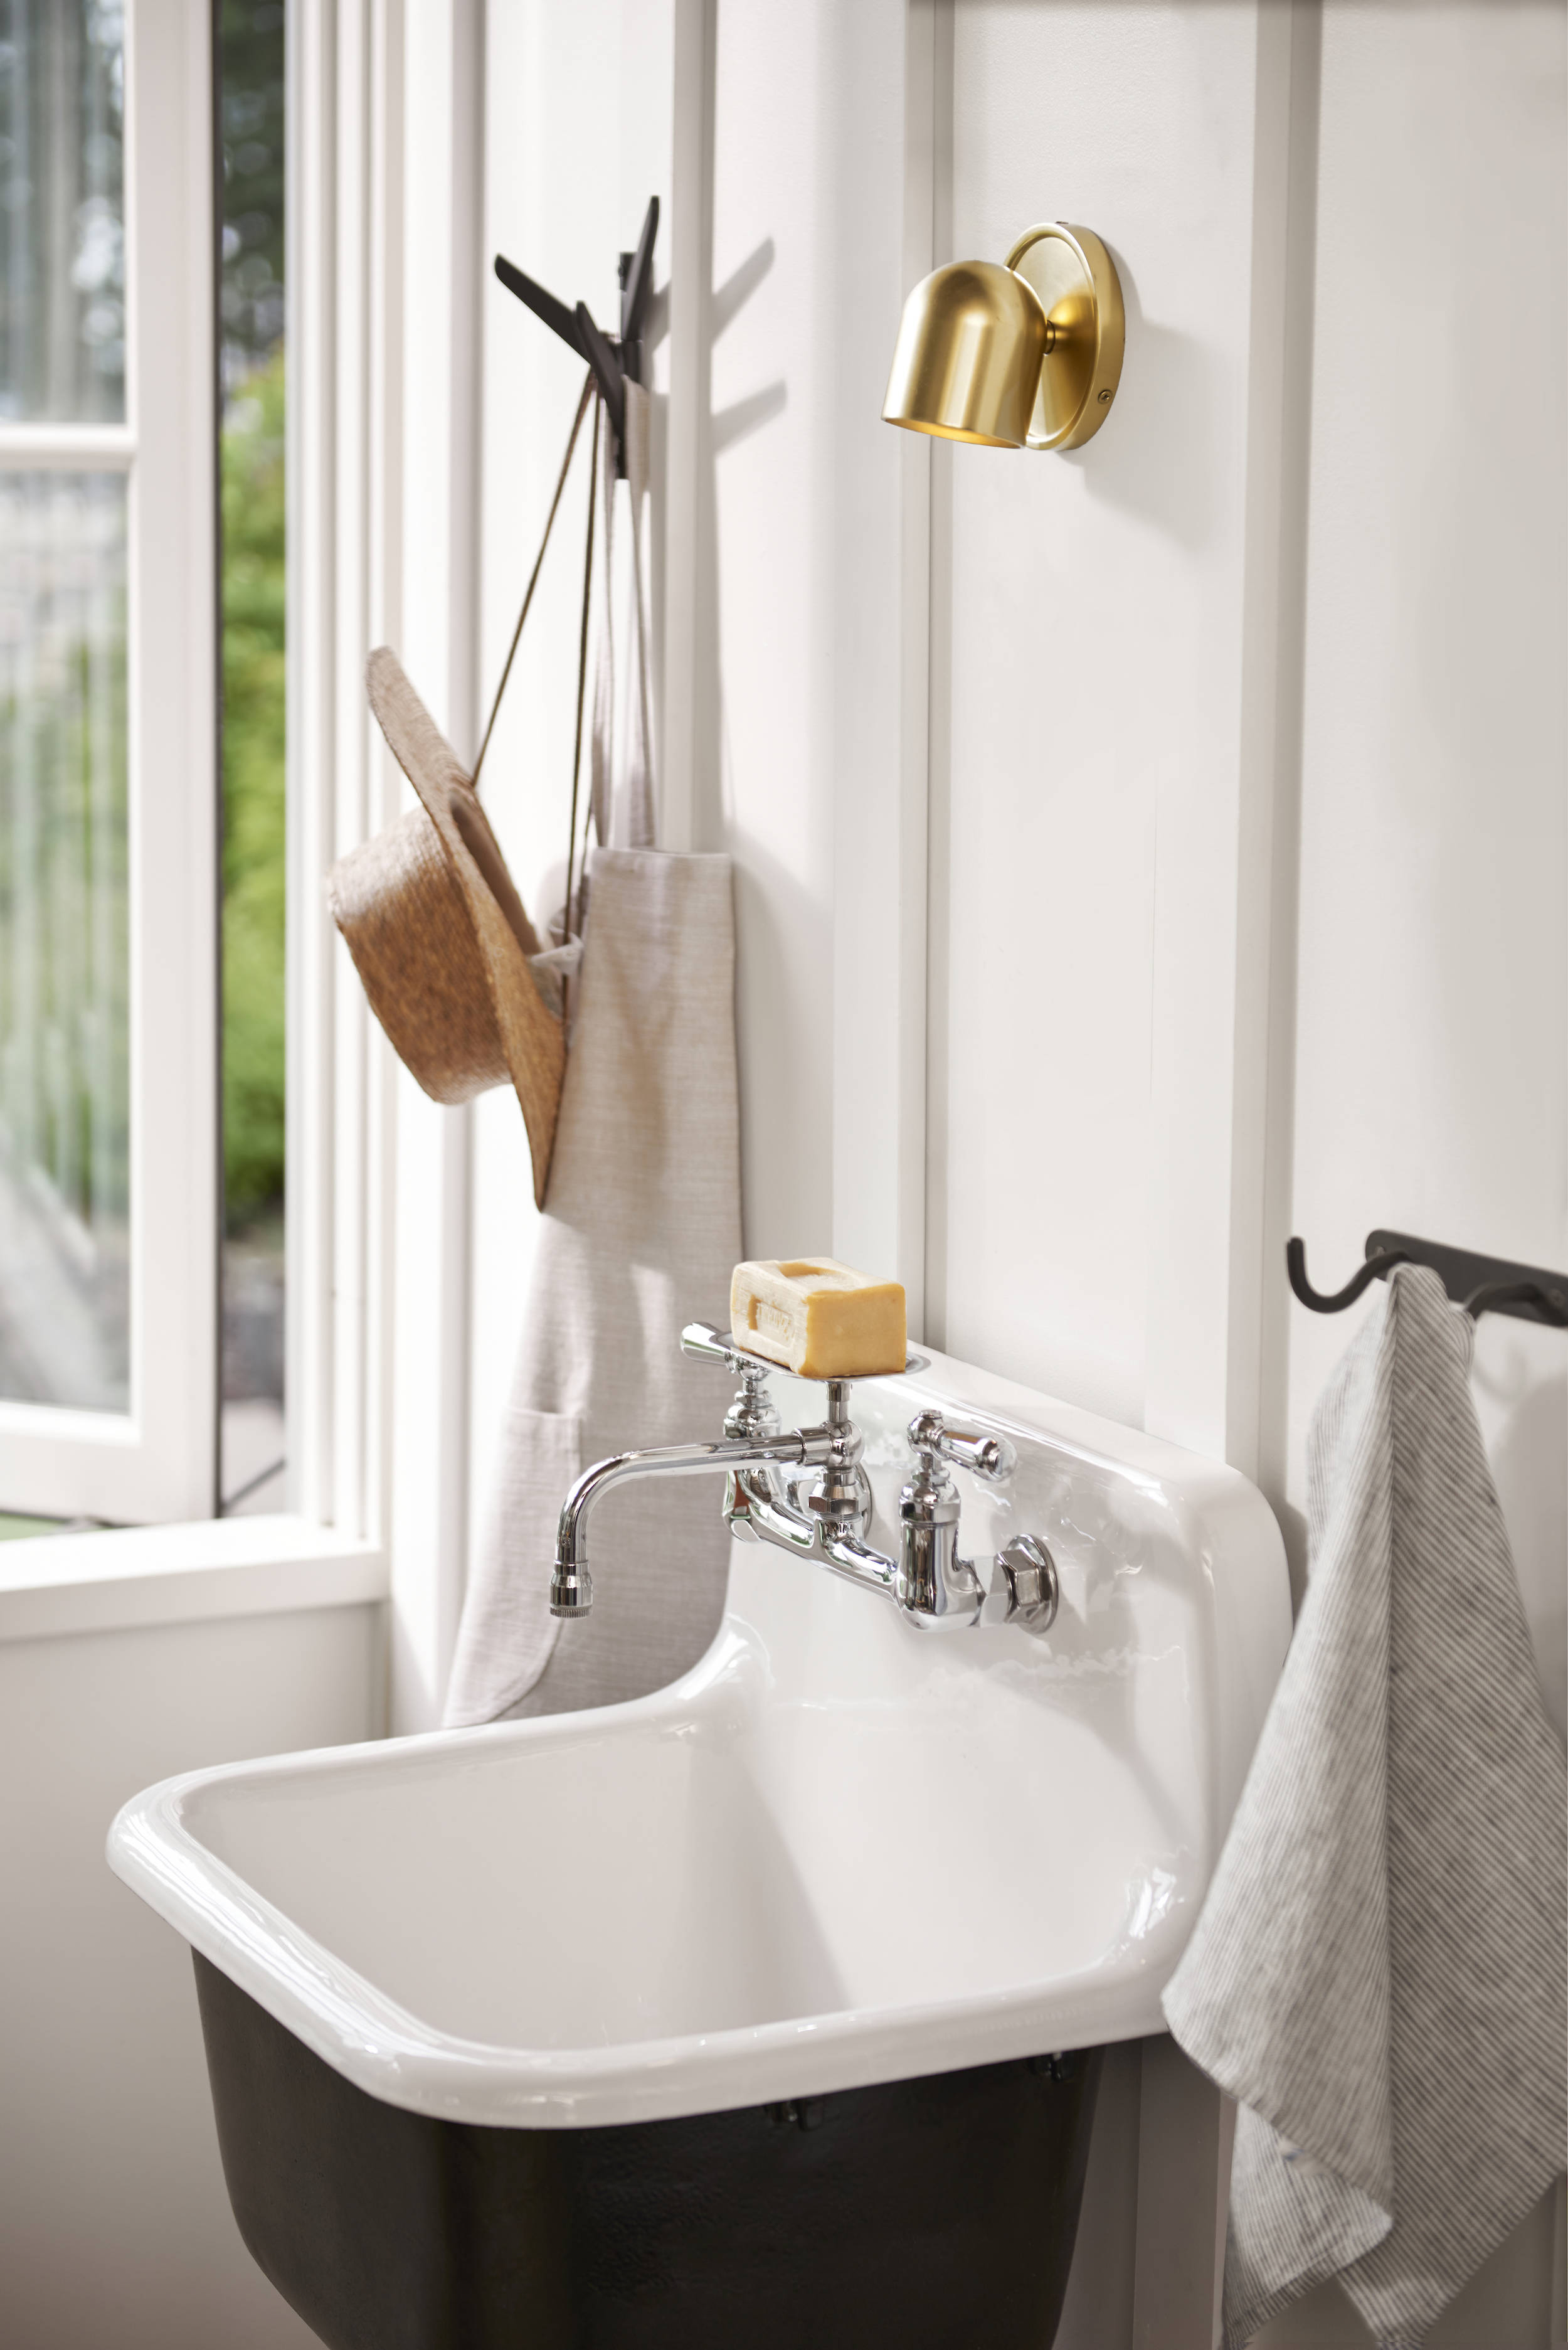 Don't forget an accessible sink for easy clean-up. This is the Grizzly Cast Iron Utility Sink with Drain and Faucet ($src=